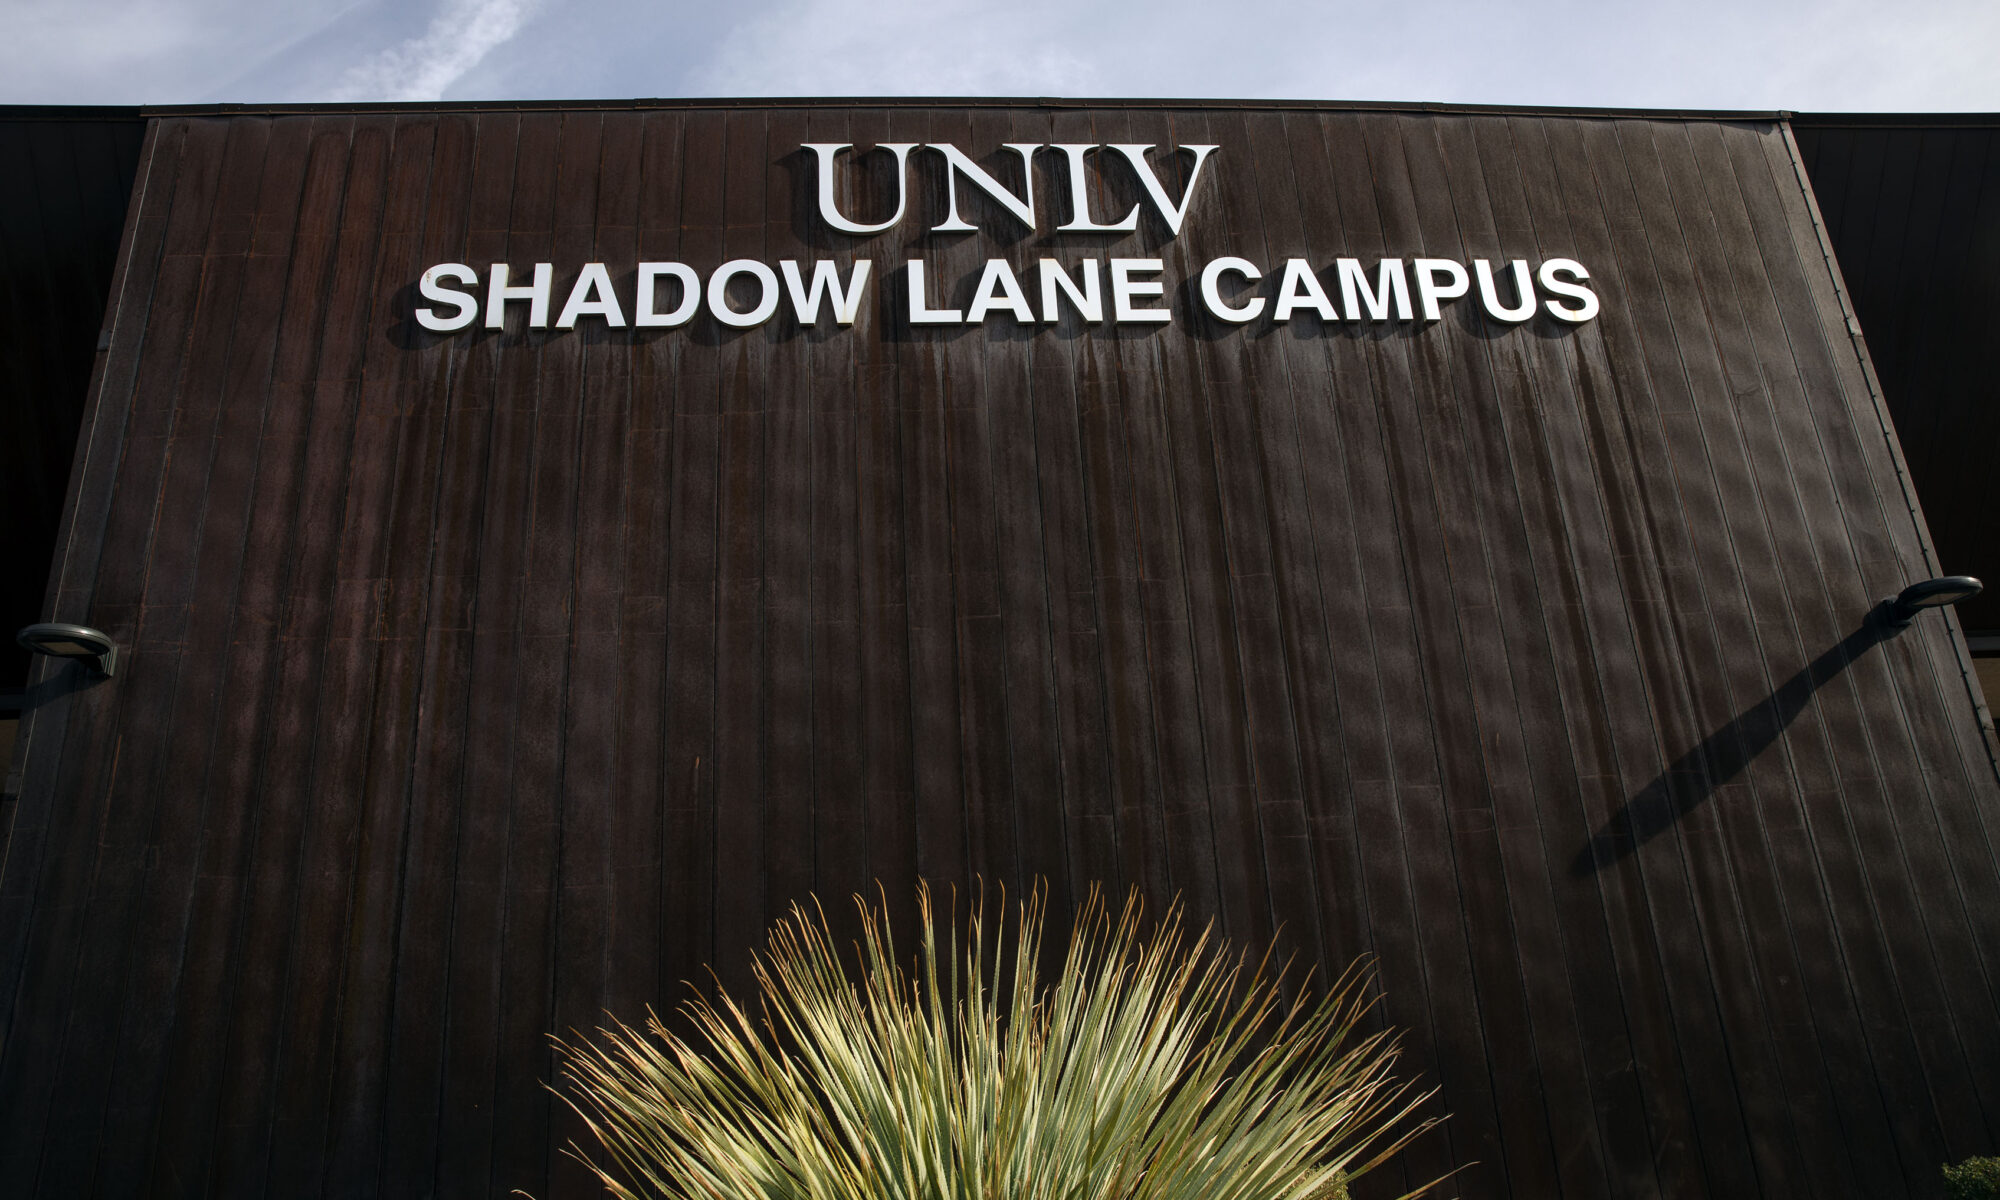 The sign at the UNLV Shadow Lane Campus